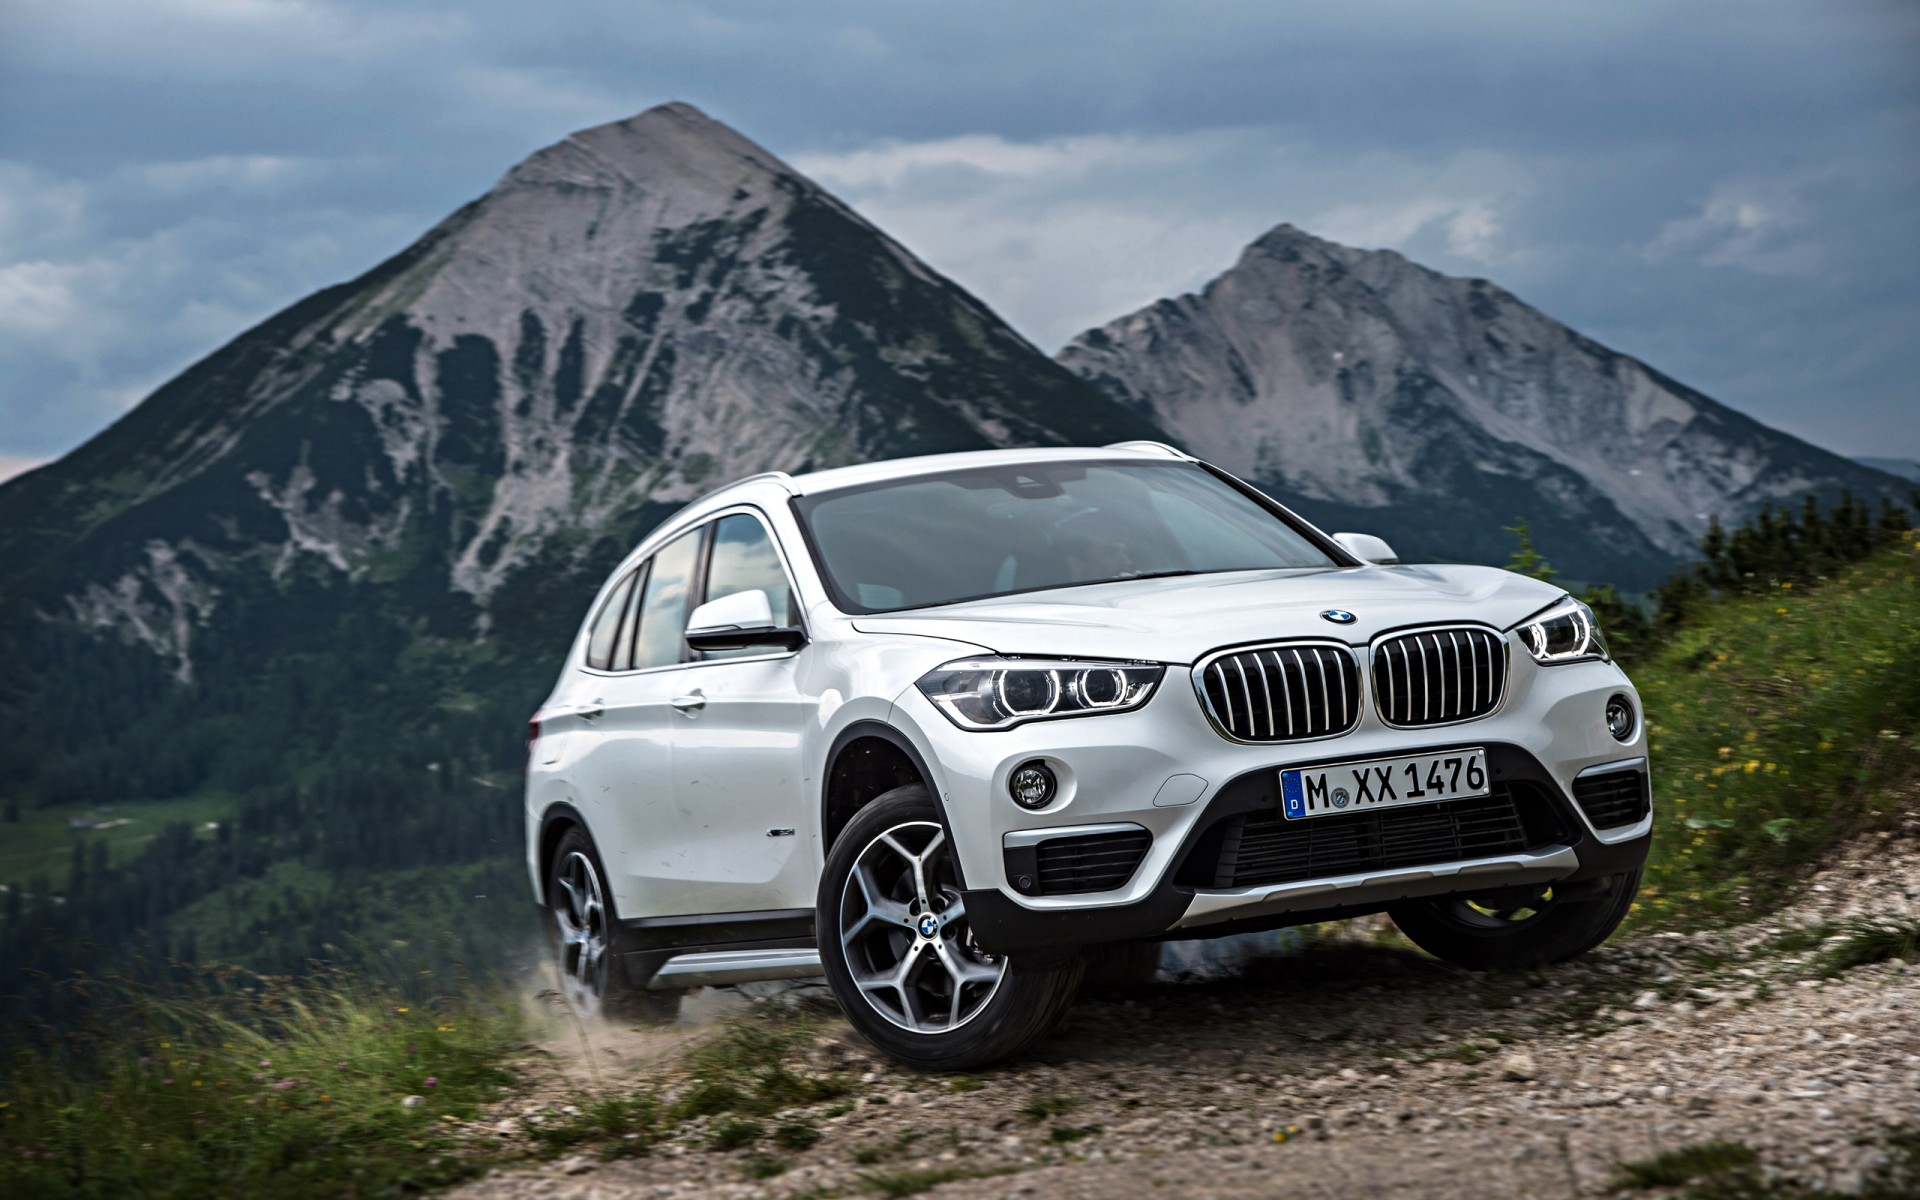 2015 Bmw X1 Xdrive Xline Wallpaper Hd Car Wallpapers